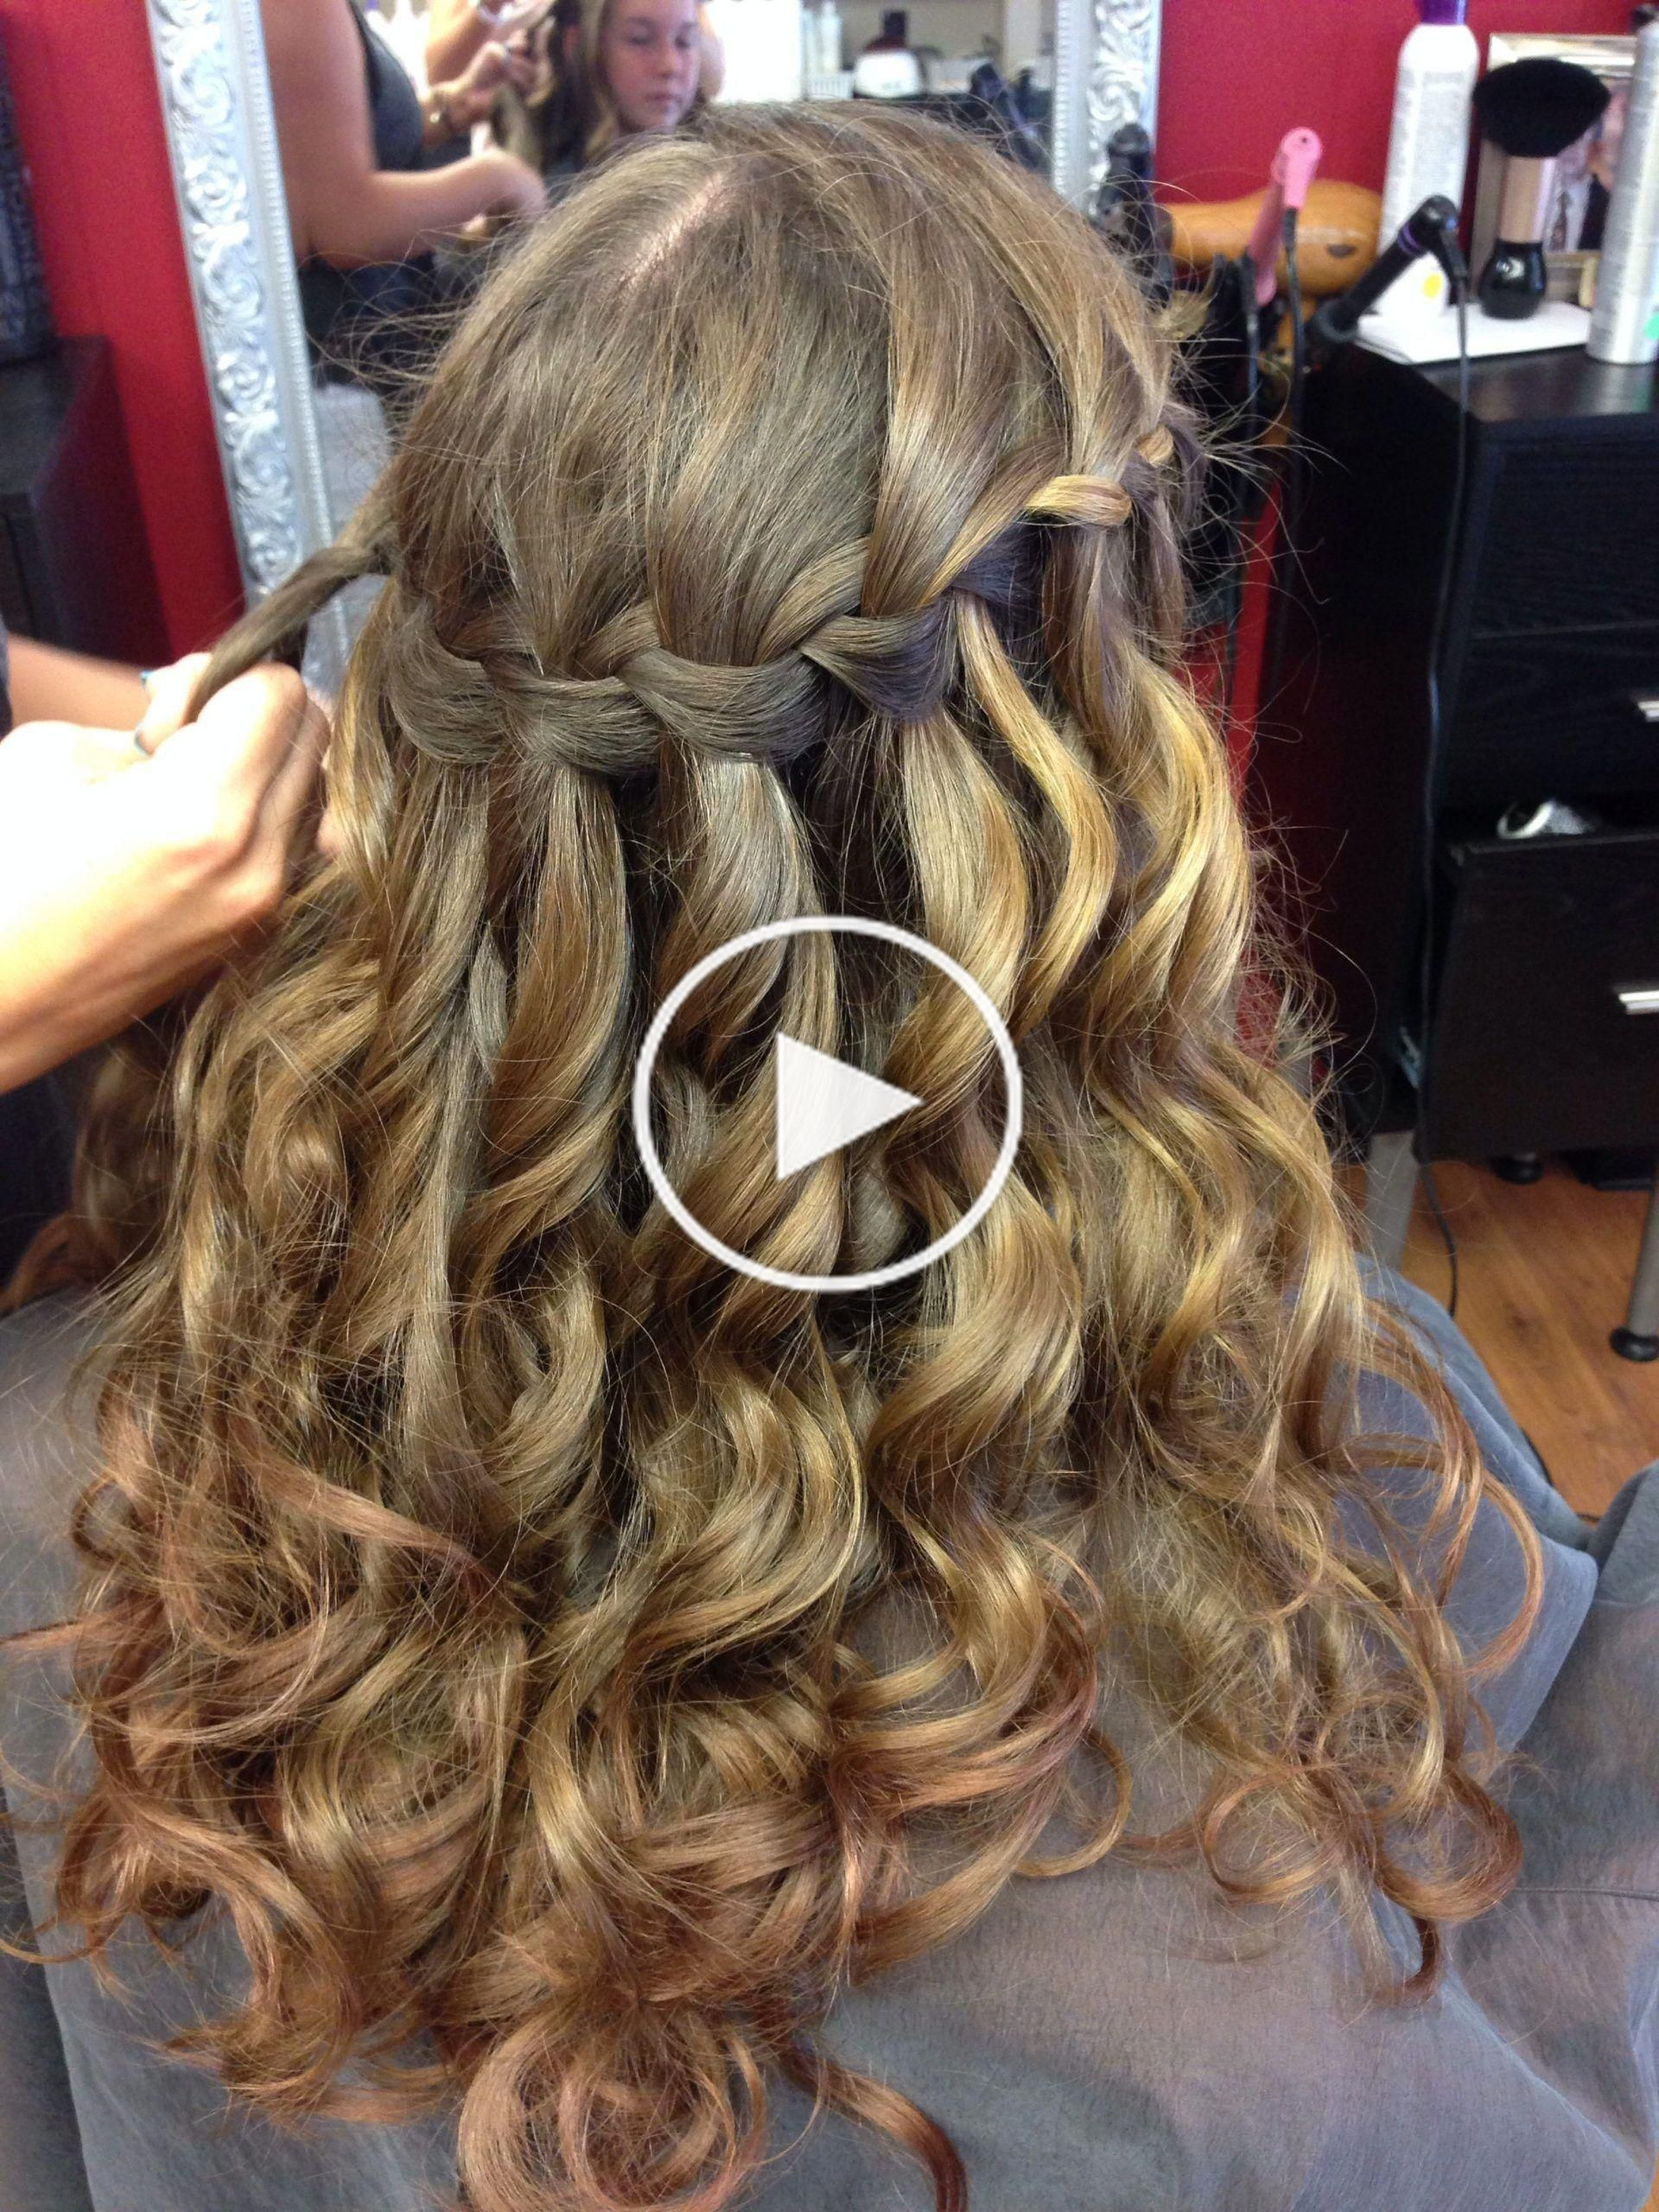 17 Most Effortless Classy Semi Formal Hairstyles 8th Grade ...